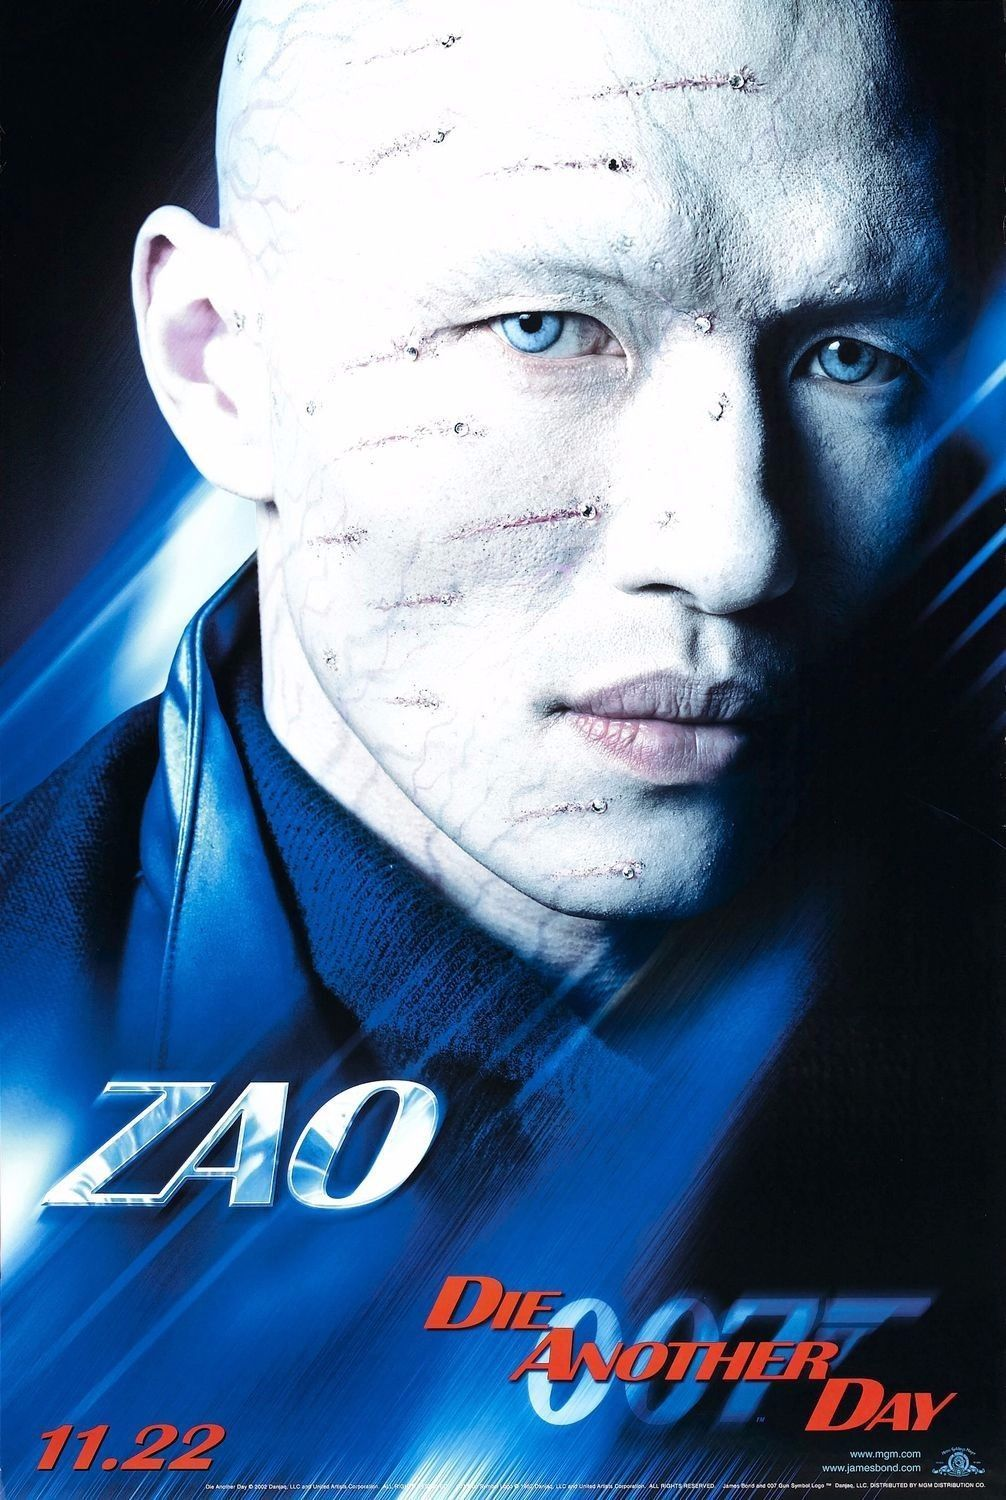 James Bond Rick Yune As Zao Die Another Day Double Sided Vinyl